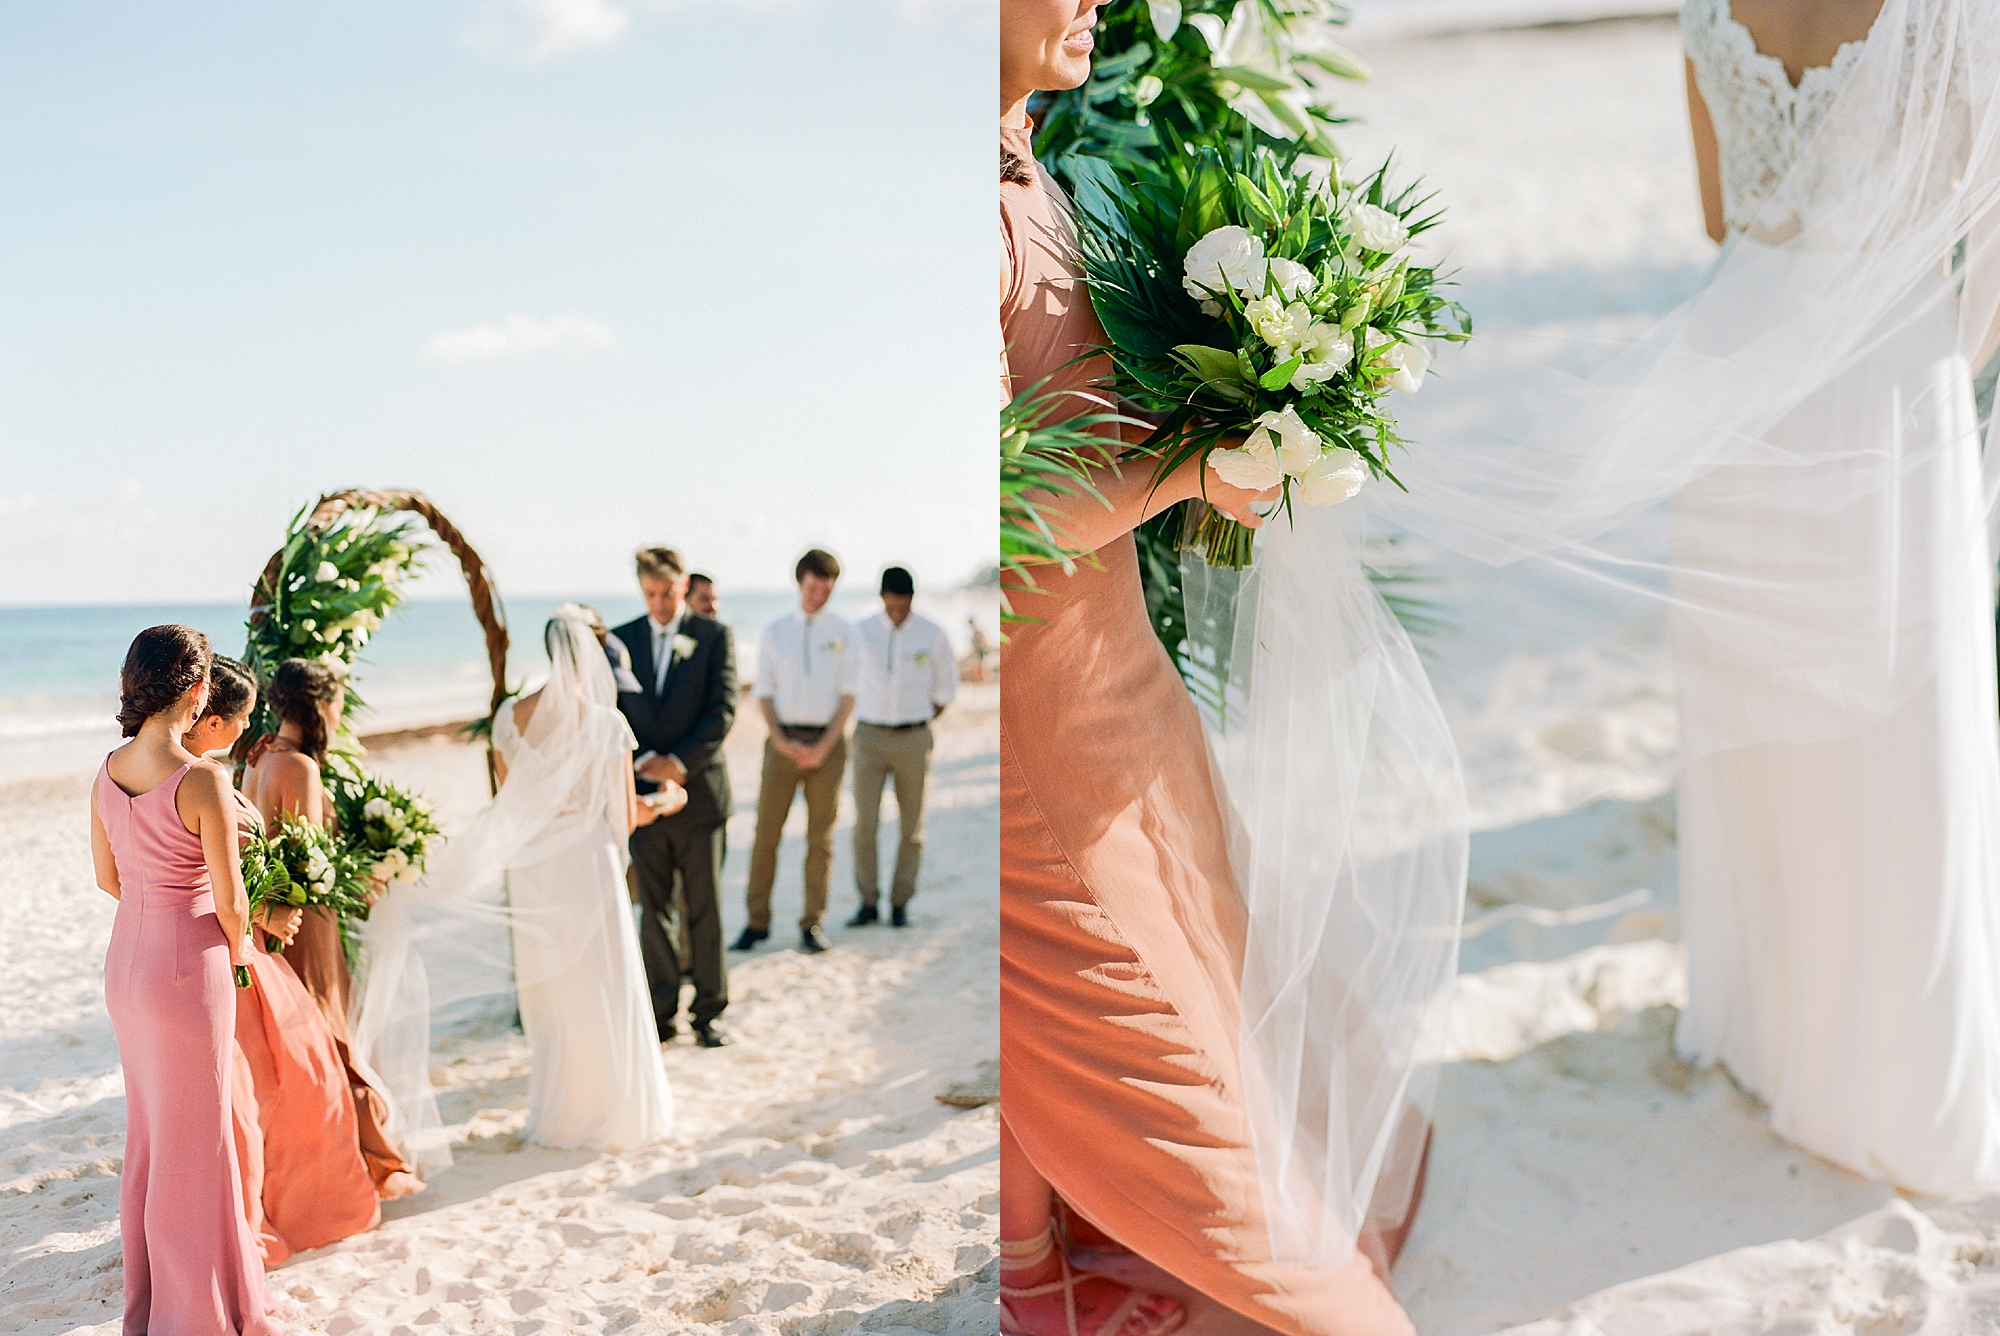 Stylish and Candid Destination Film Wedding Photography in Tulum Mexico by Magdalena Studios 0012